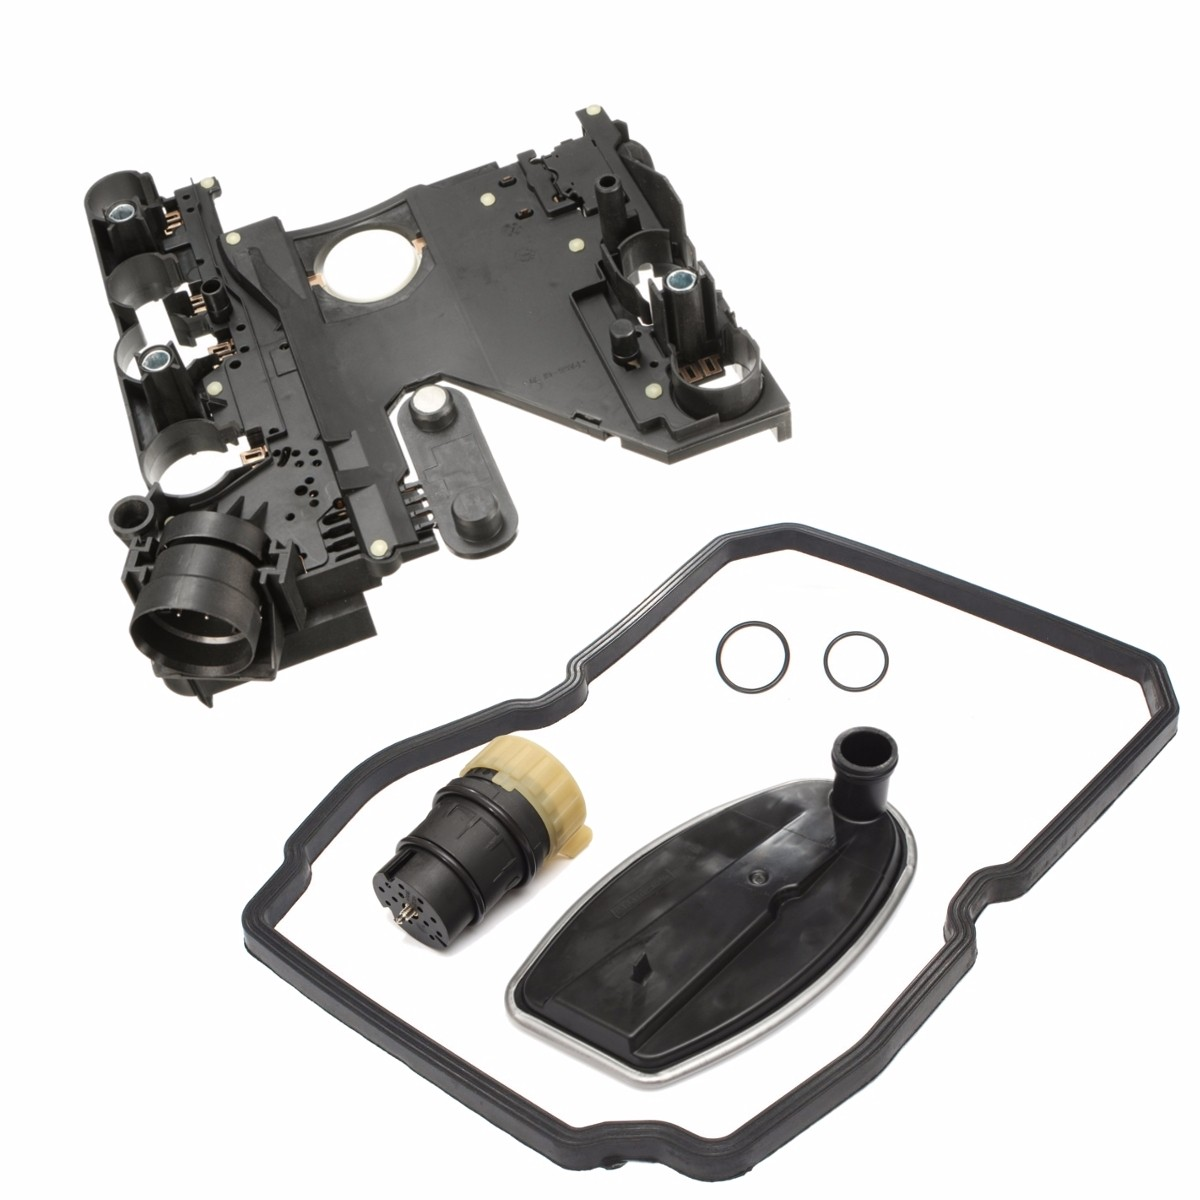 Transmission Conductor Plate Connector Filter Gasket Kit Set For Benz CLK ML SL auto fuel filter 163 477 0201 163 477 0701 for mercedes benz